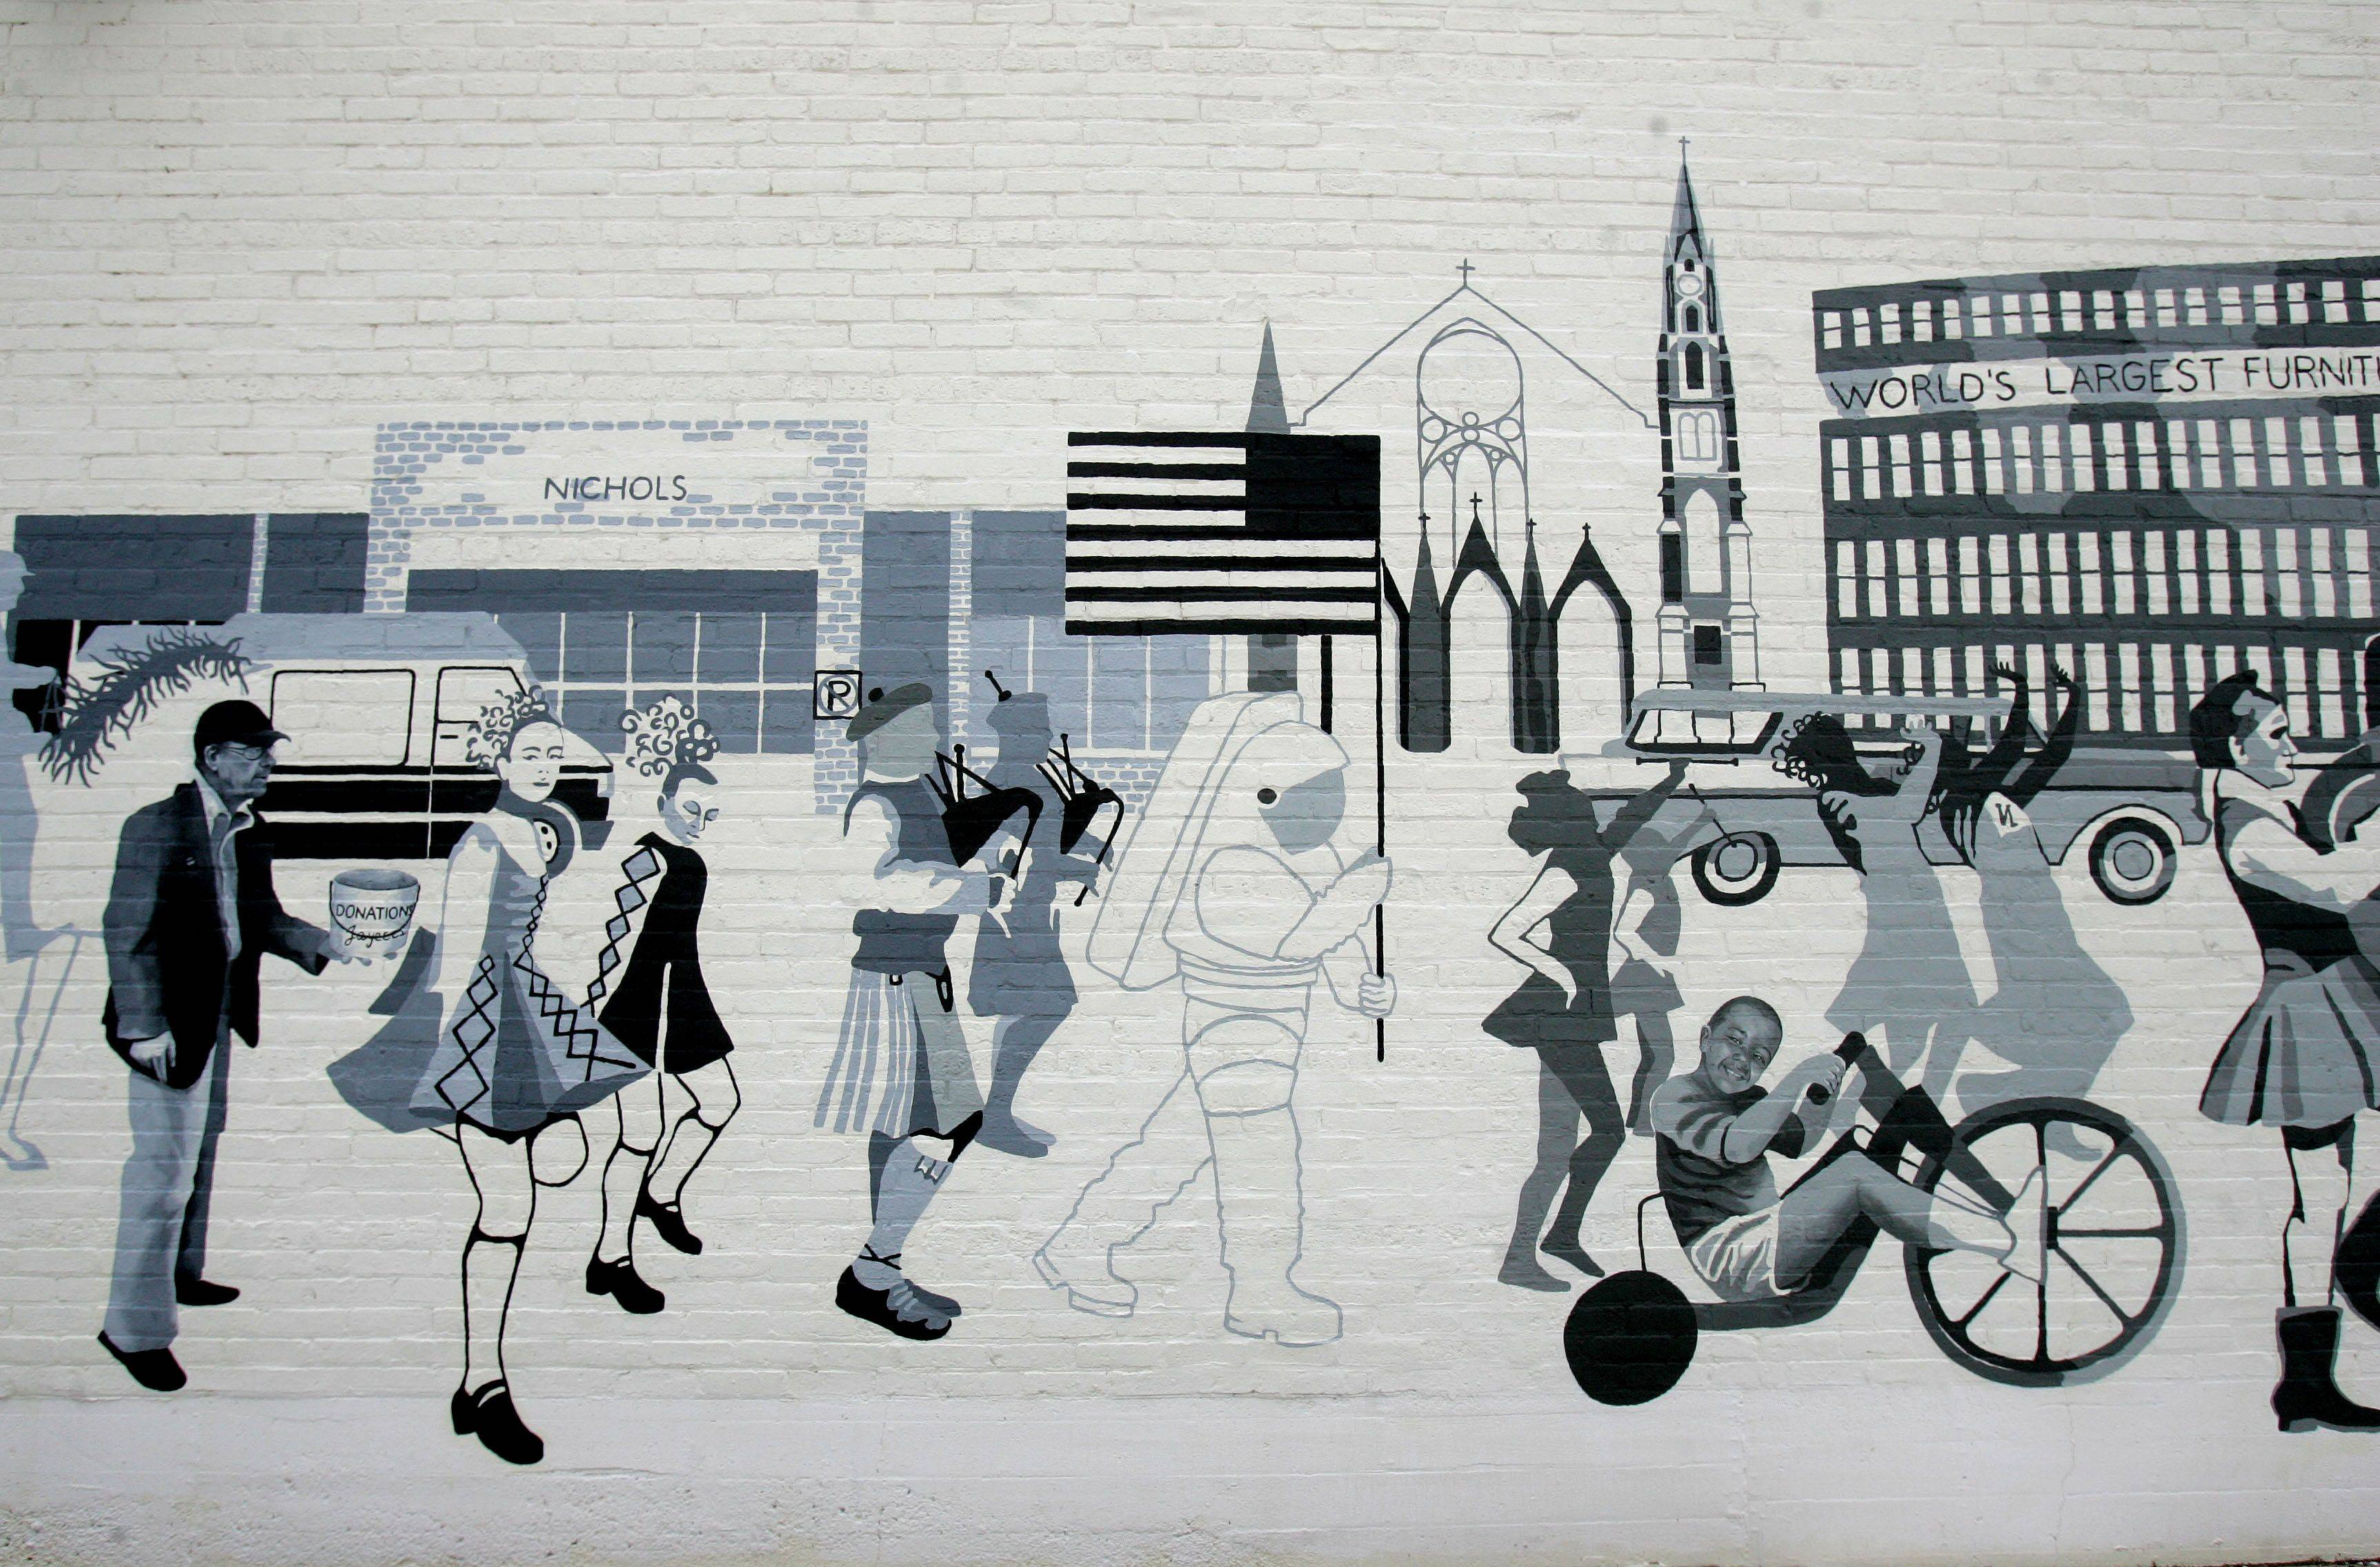 Artist Adela Vystejnova Gartner's mural features a parade starting with scenes from 1900 and continuing through the present.